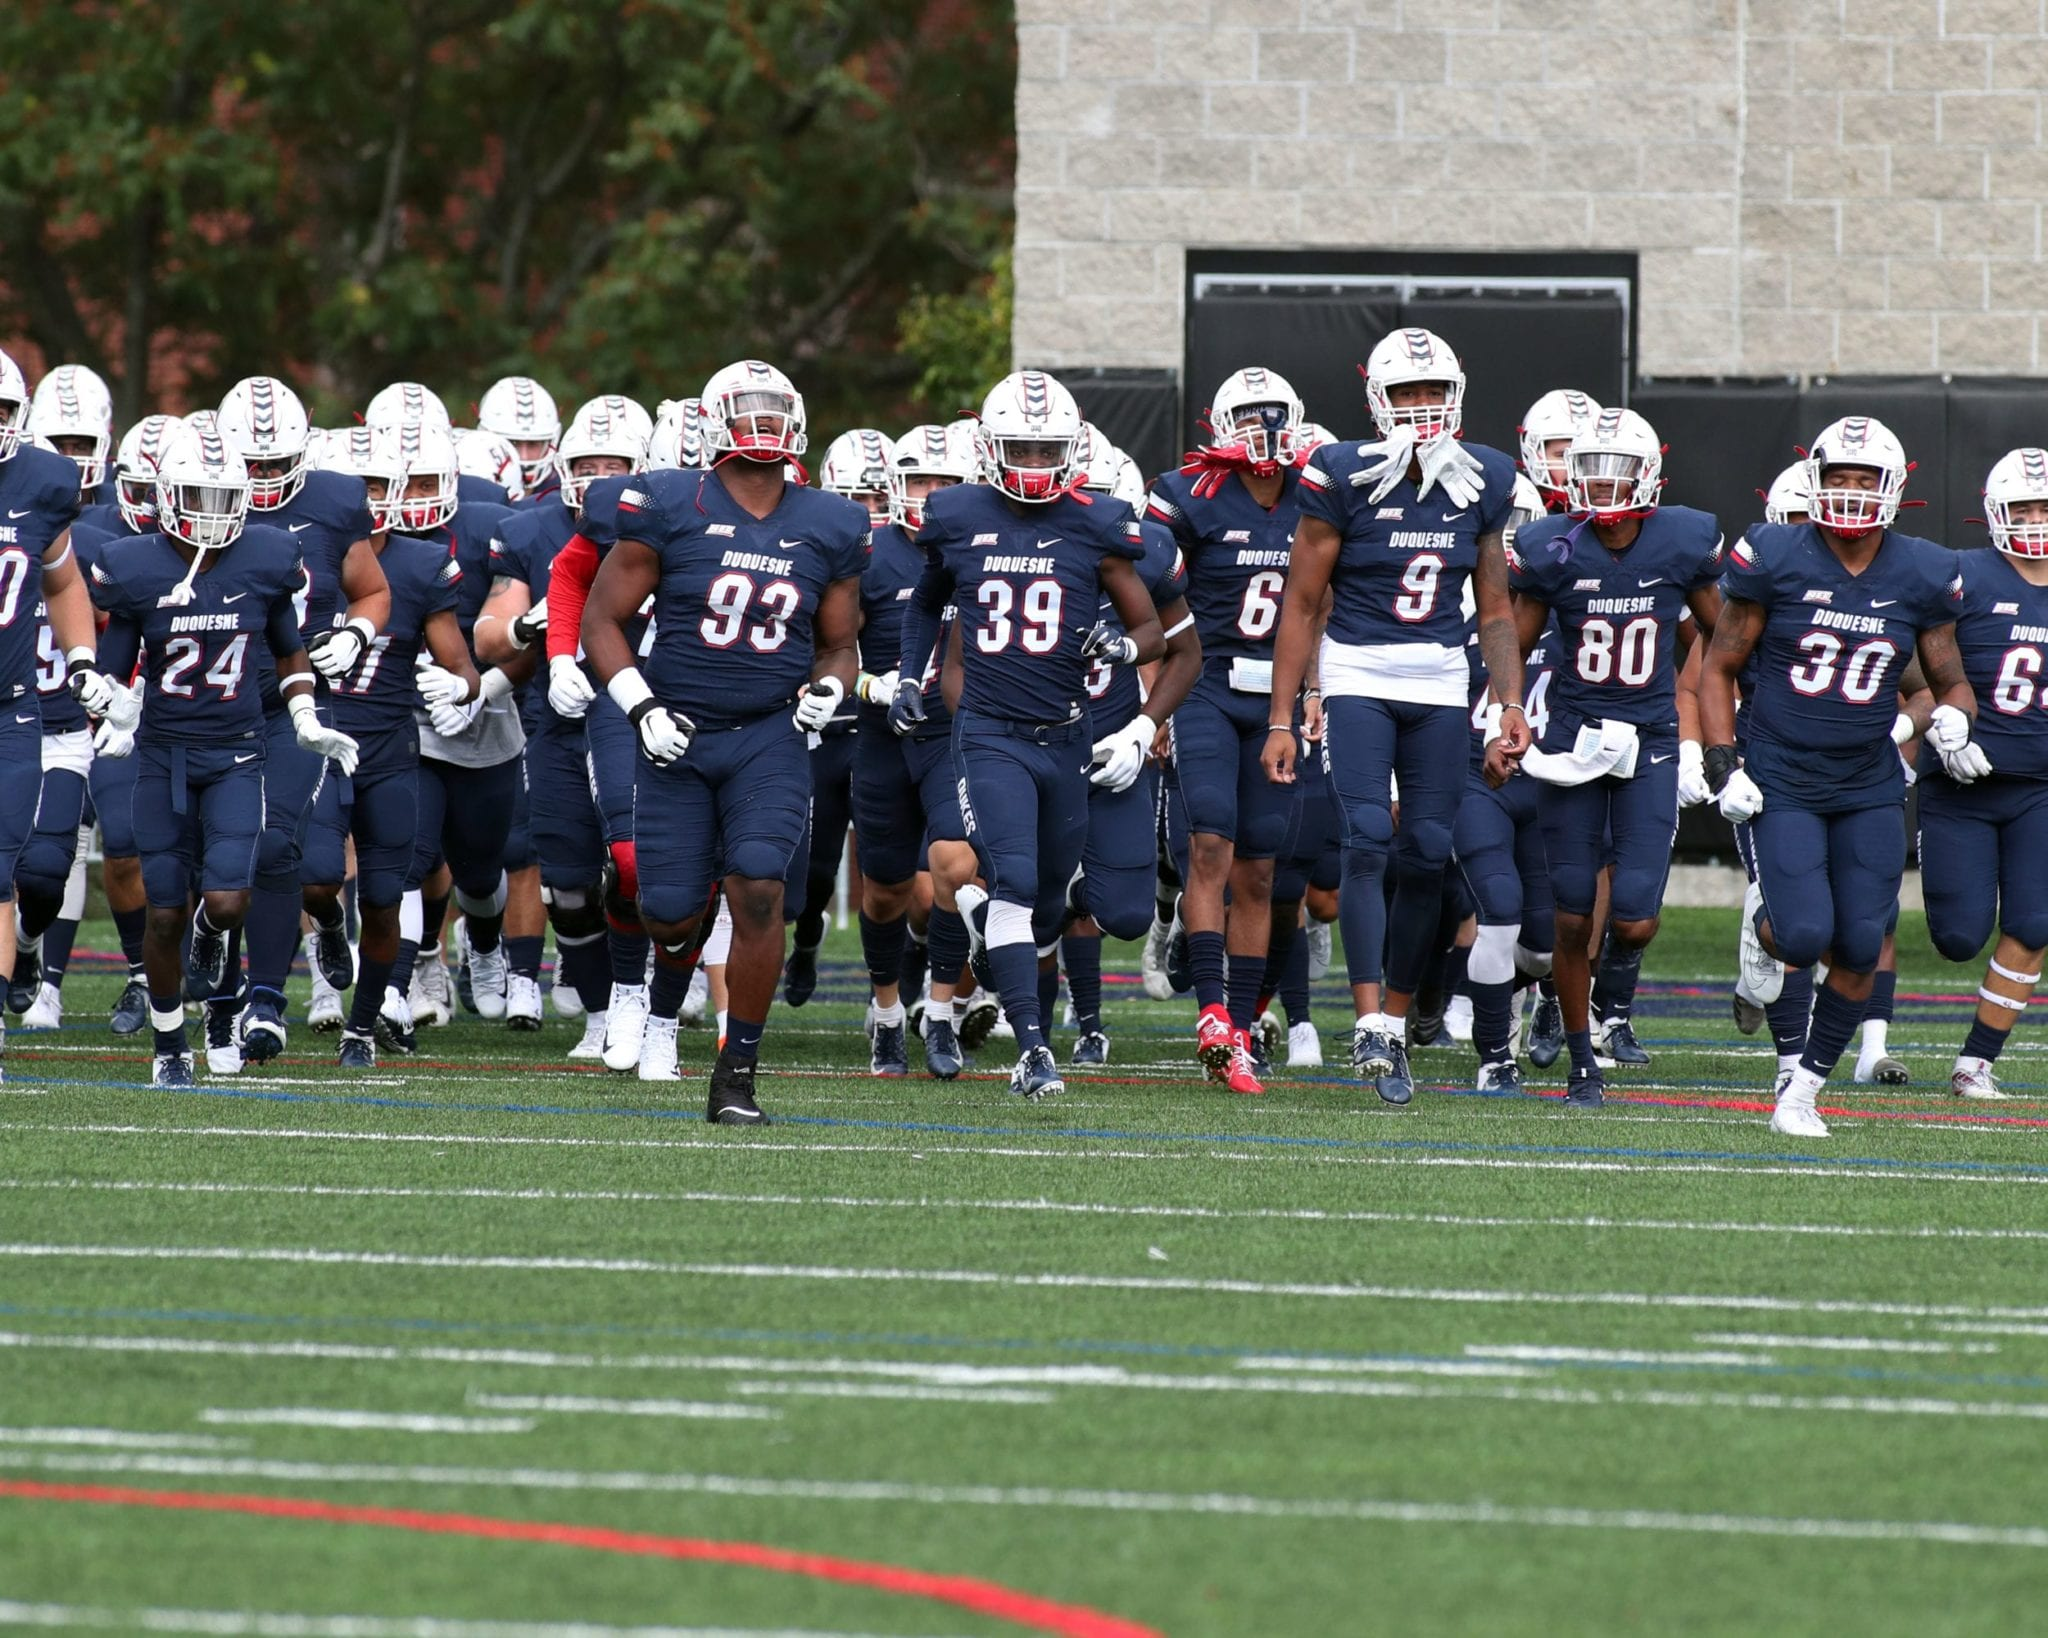 Duquesne Adds Air Force To Their 2020 Football Schedule Pittsburgh Sports Now